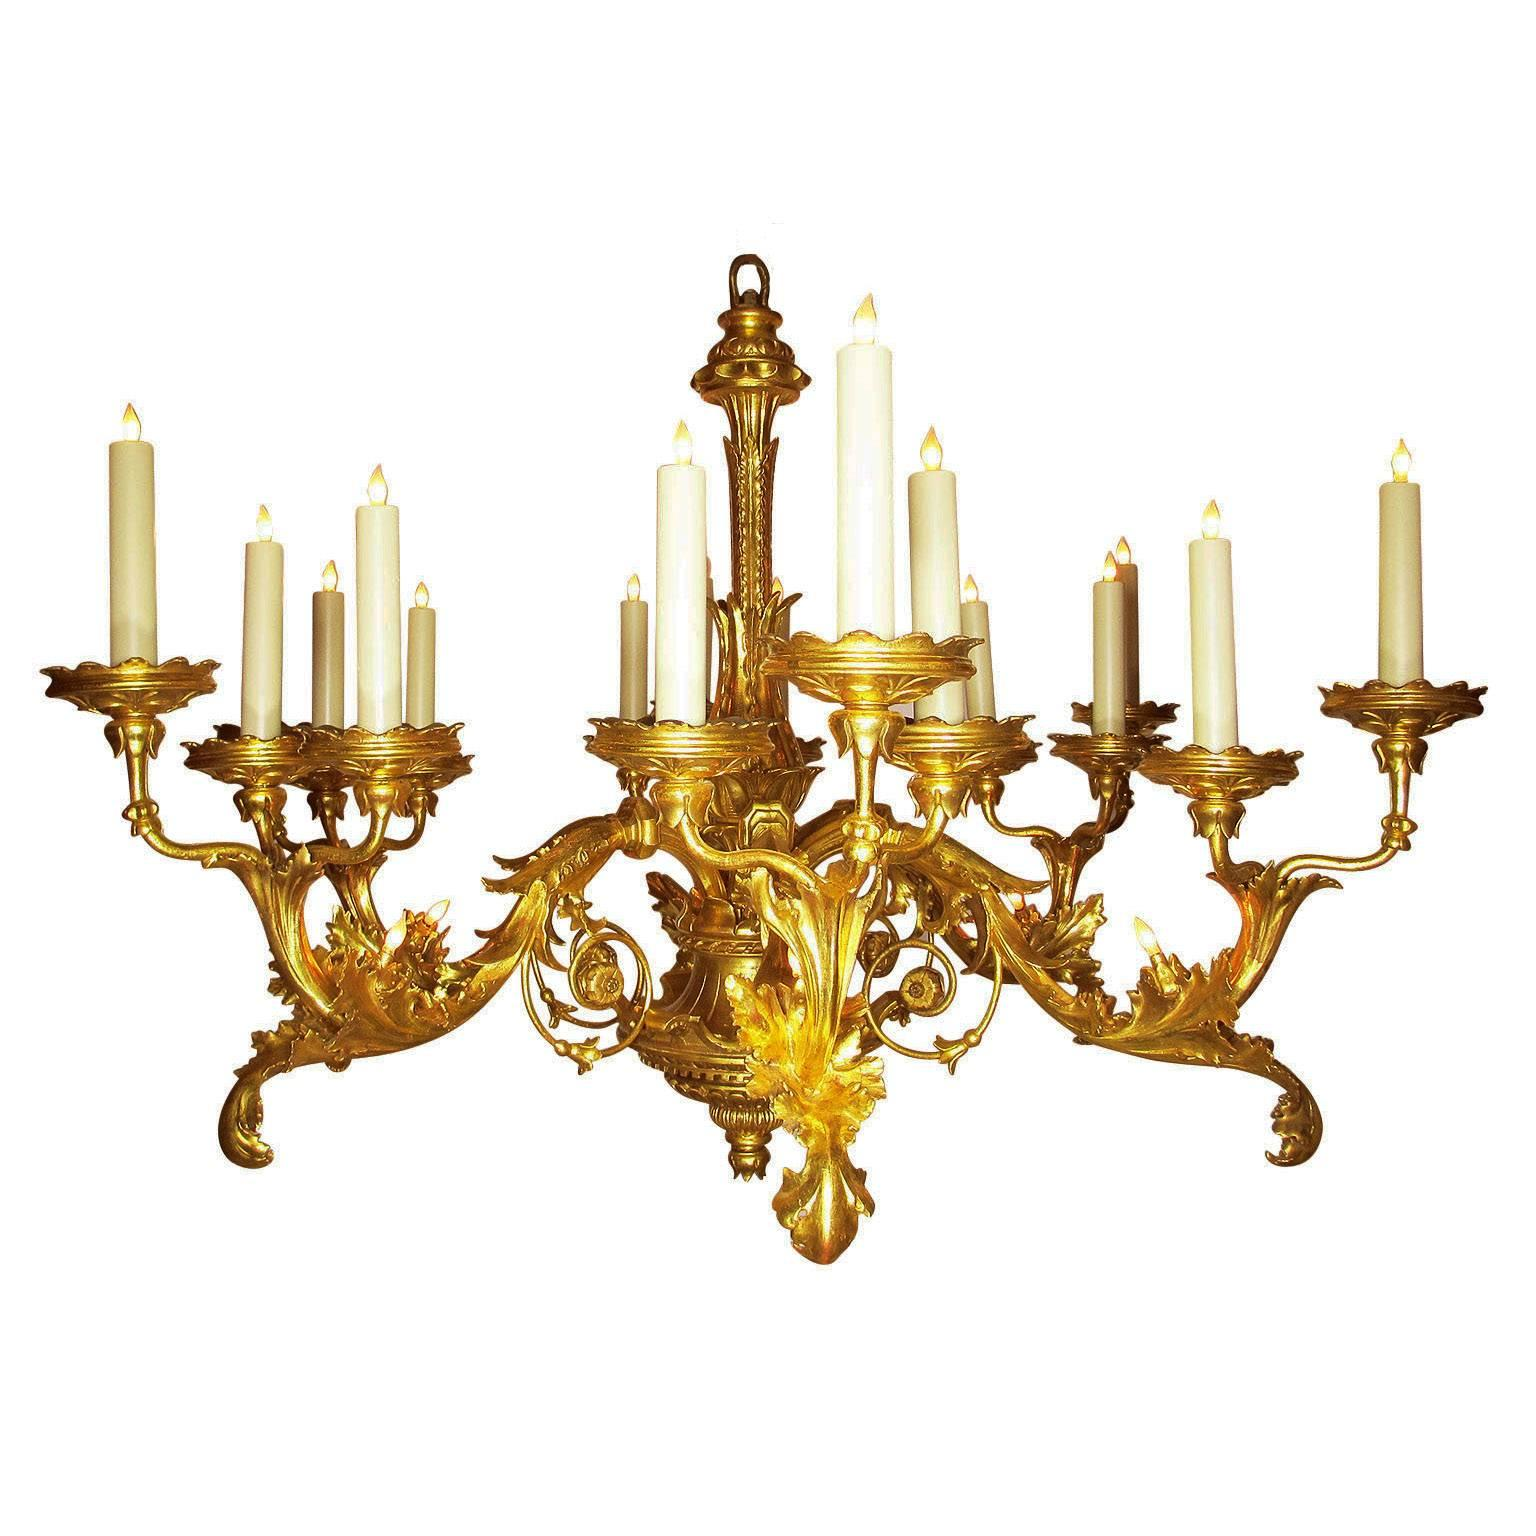 Palatial Italian 19th Century Florentine Rococo Giltwood Carved Chandelier